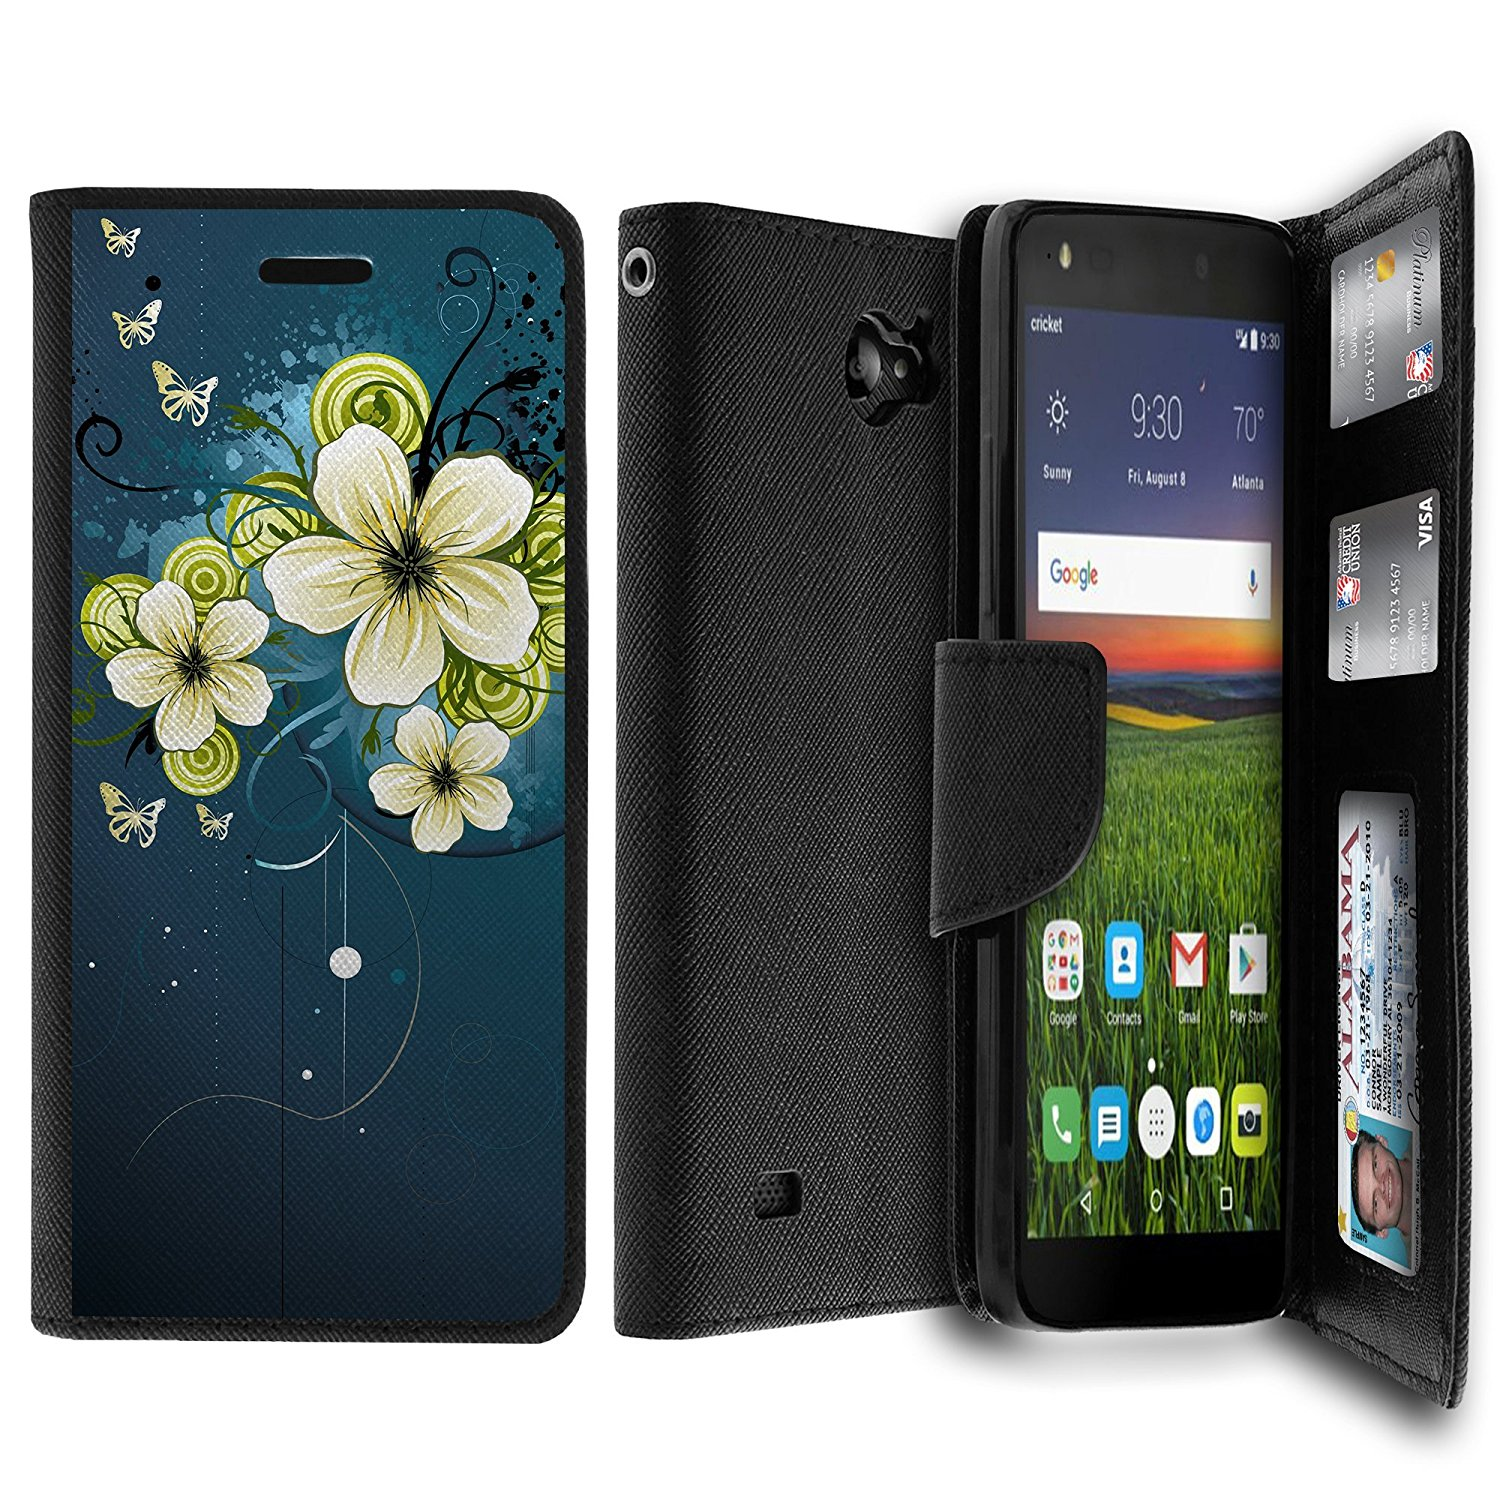 Case for ZTE Majesty Pro Case, Majesty Pro Wallet Case[MAX WALLET] Dual Purpose Wallet Case, Phone Protector and Wallet Style Design Card ID Slot Custom Print Design By Untouchble - Green Flower